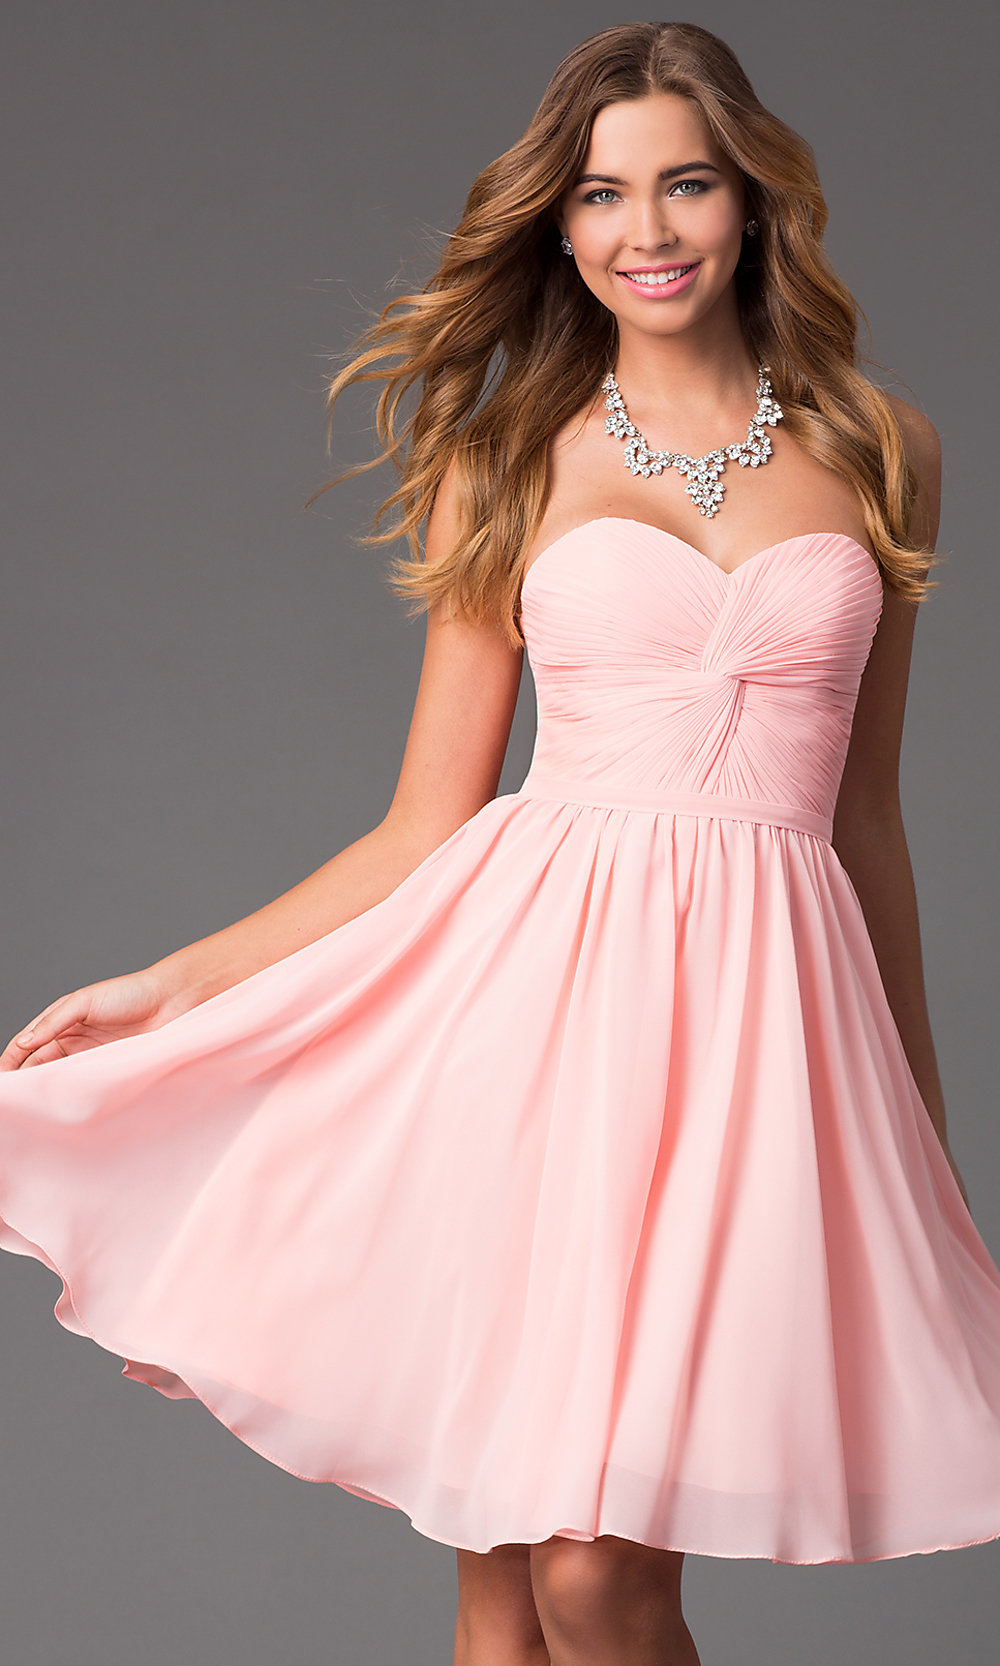 Short Strapless Sweetheart Prom Dress - PromGirl